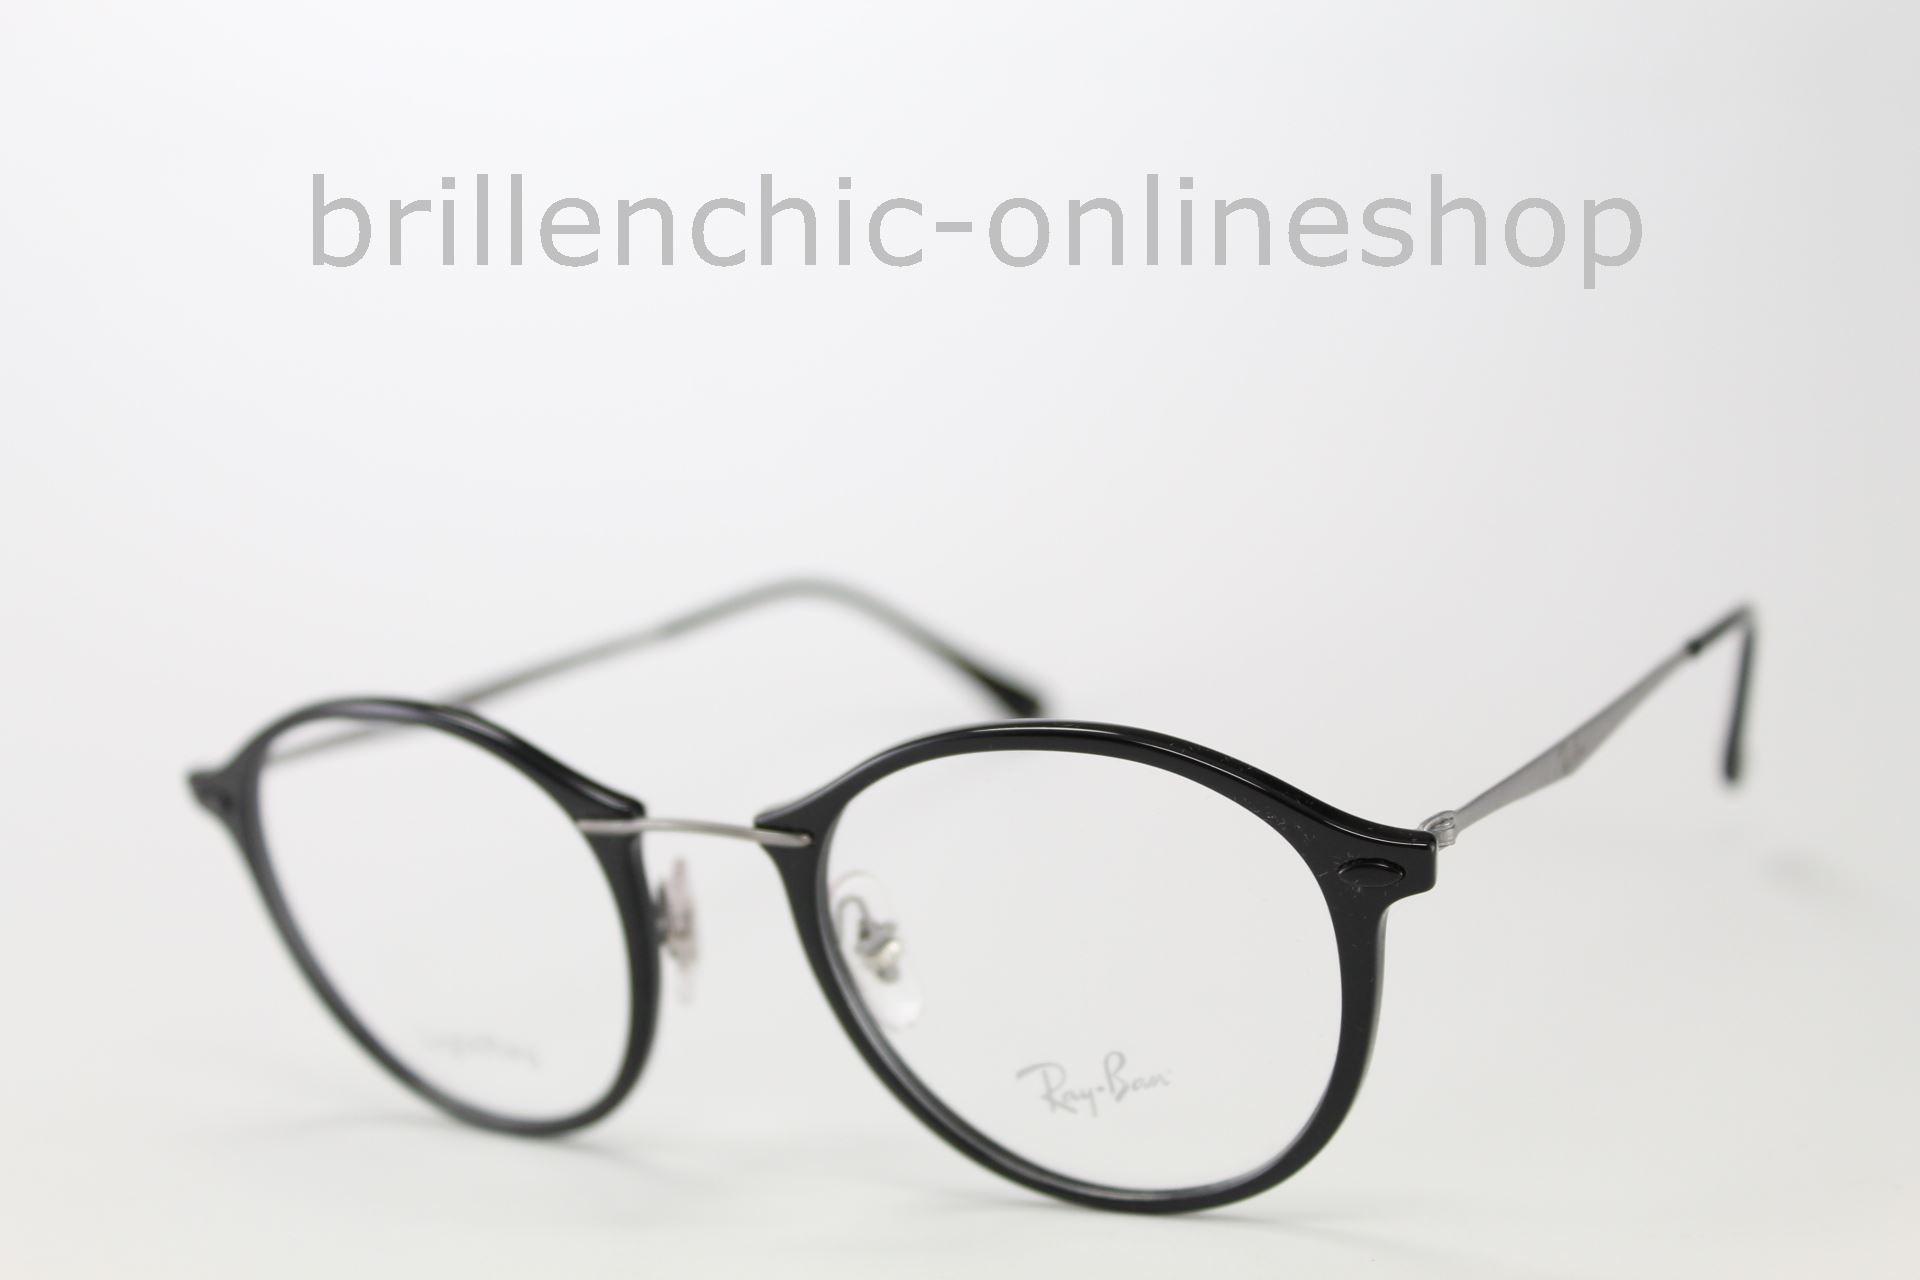 1c83303df5 Brillenchic-onlineshop in Berlin - Ray Ban RB 7073 2000 LIGHT RAY